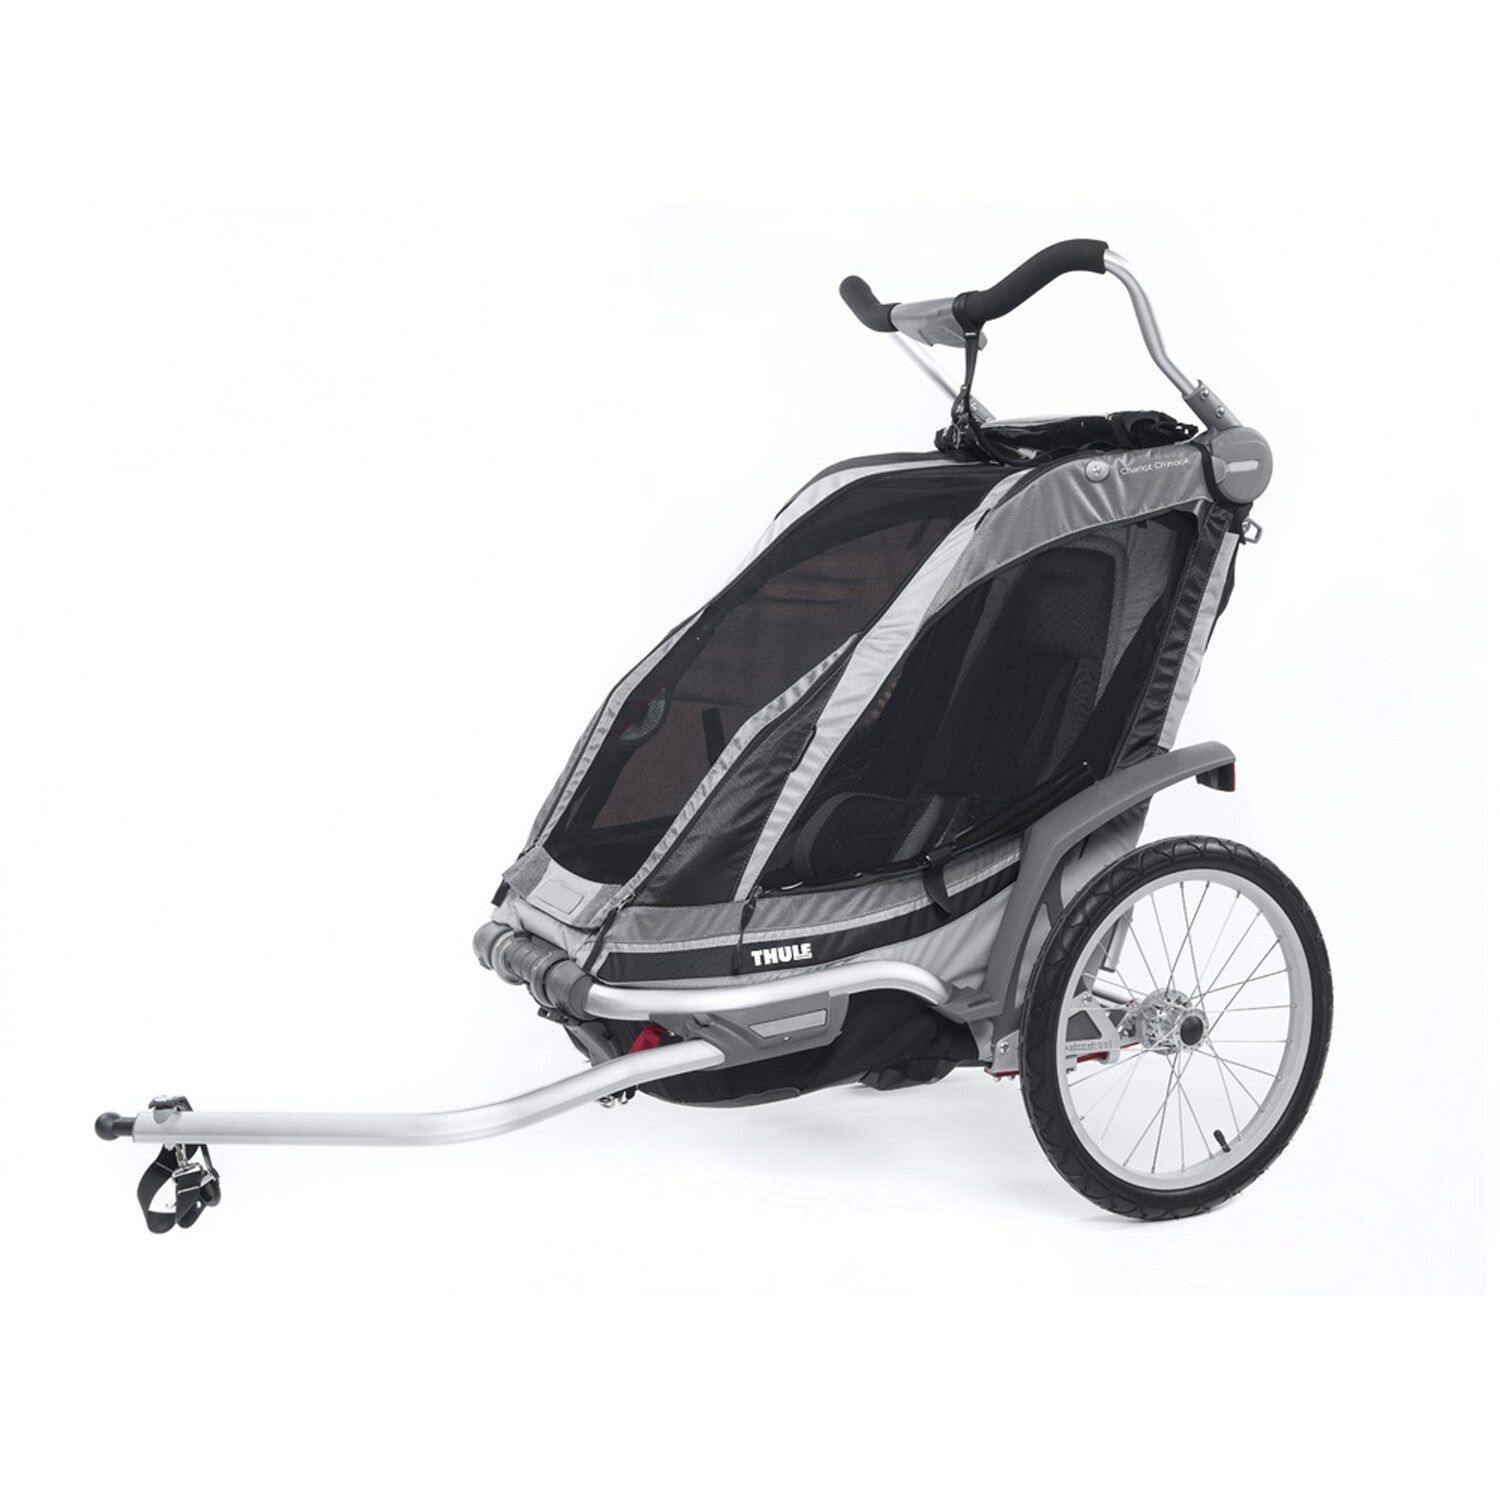 Thule Chariot Chinook 1 MultiSport Child Carrier